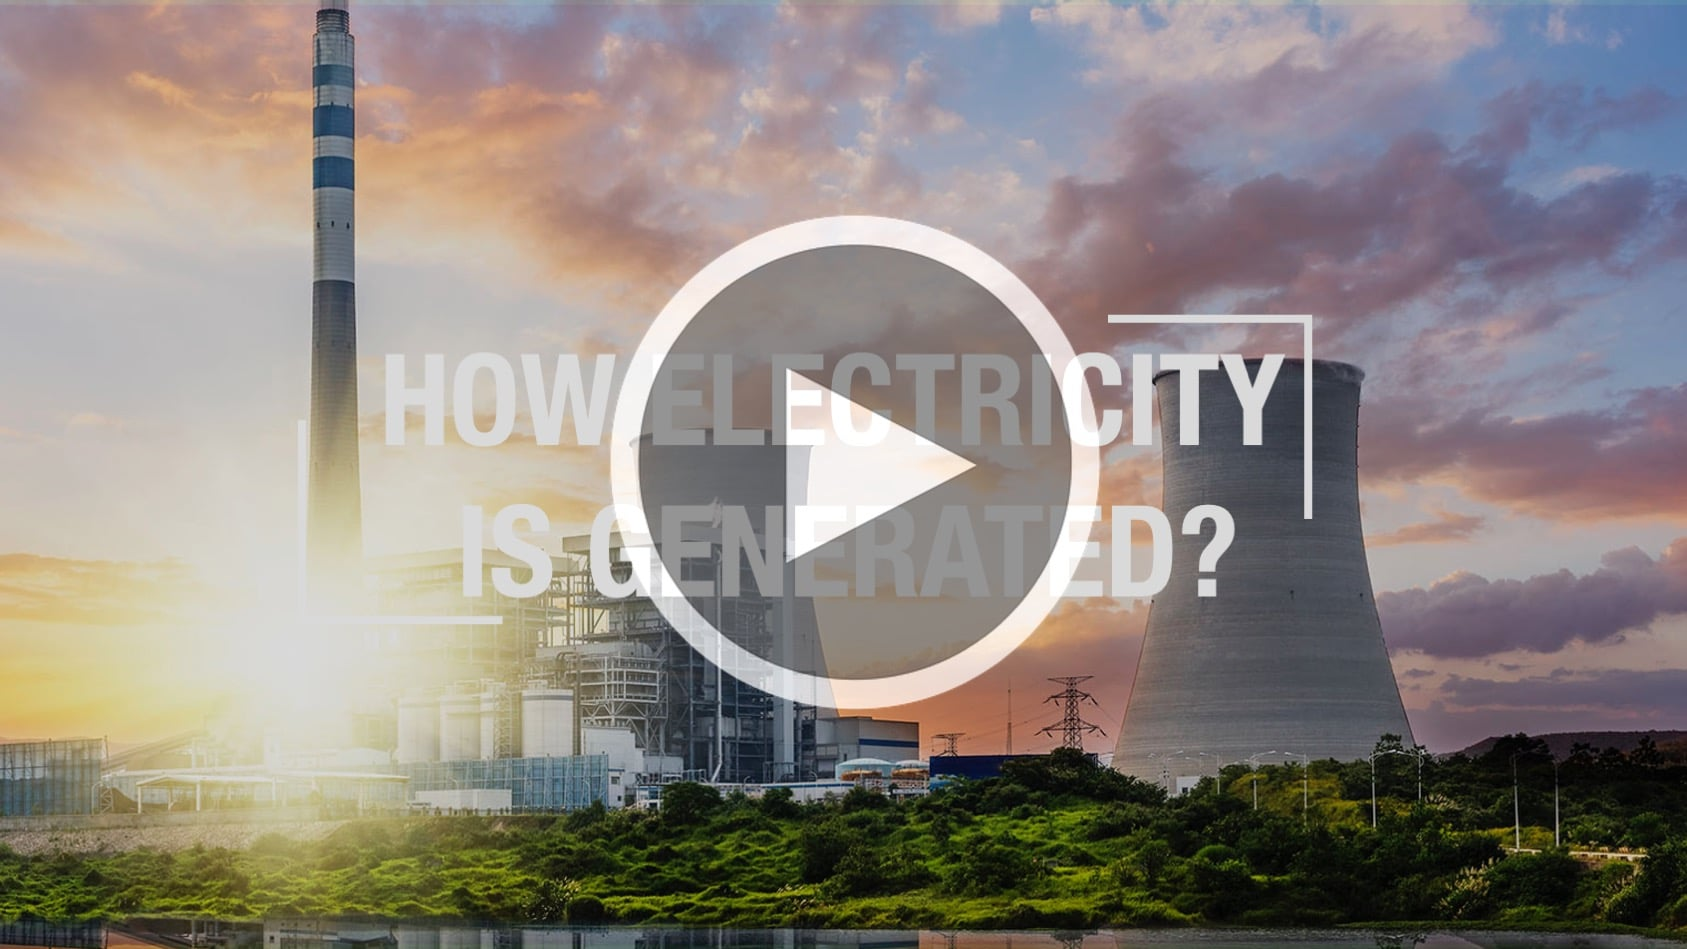 How is Electricity Generated?